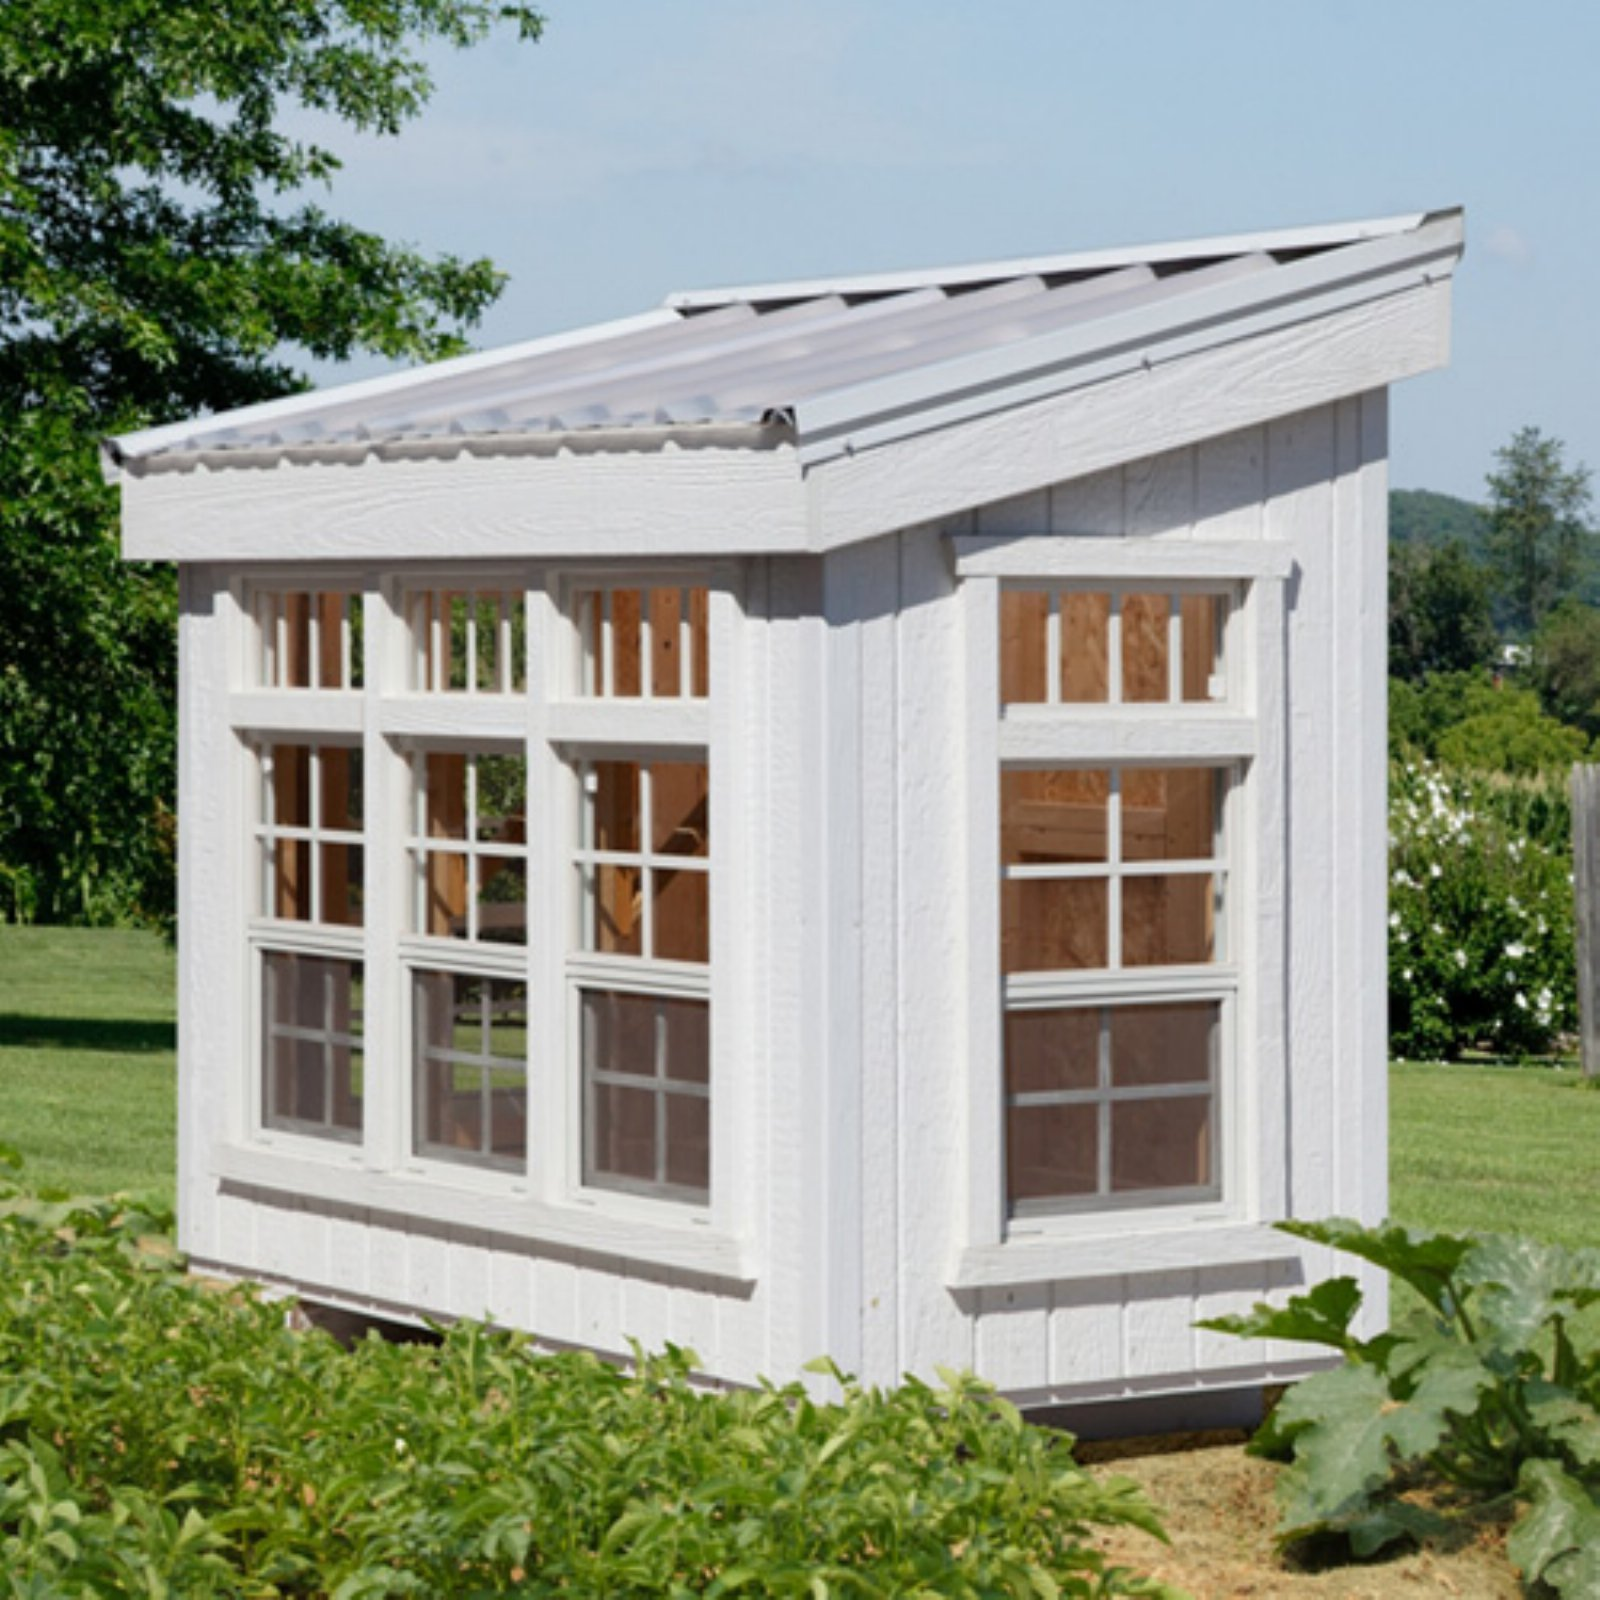 Little Cottage Petite Greenhouse with Floor Kit by Little Cottage Co.